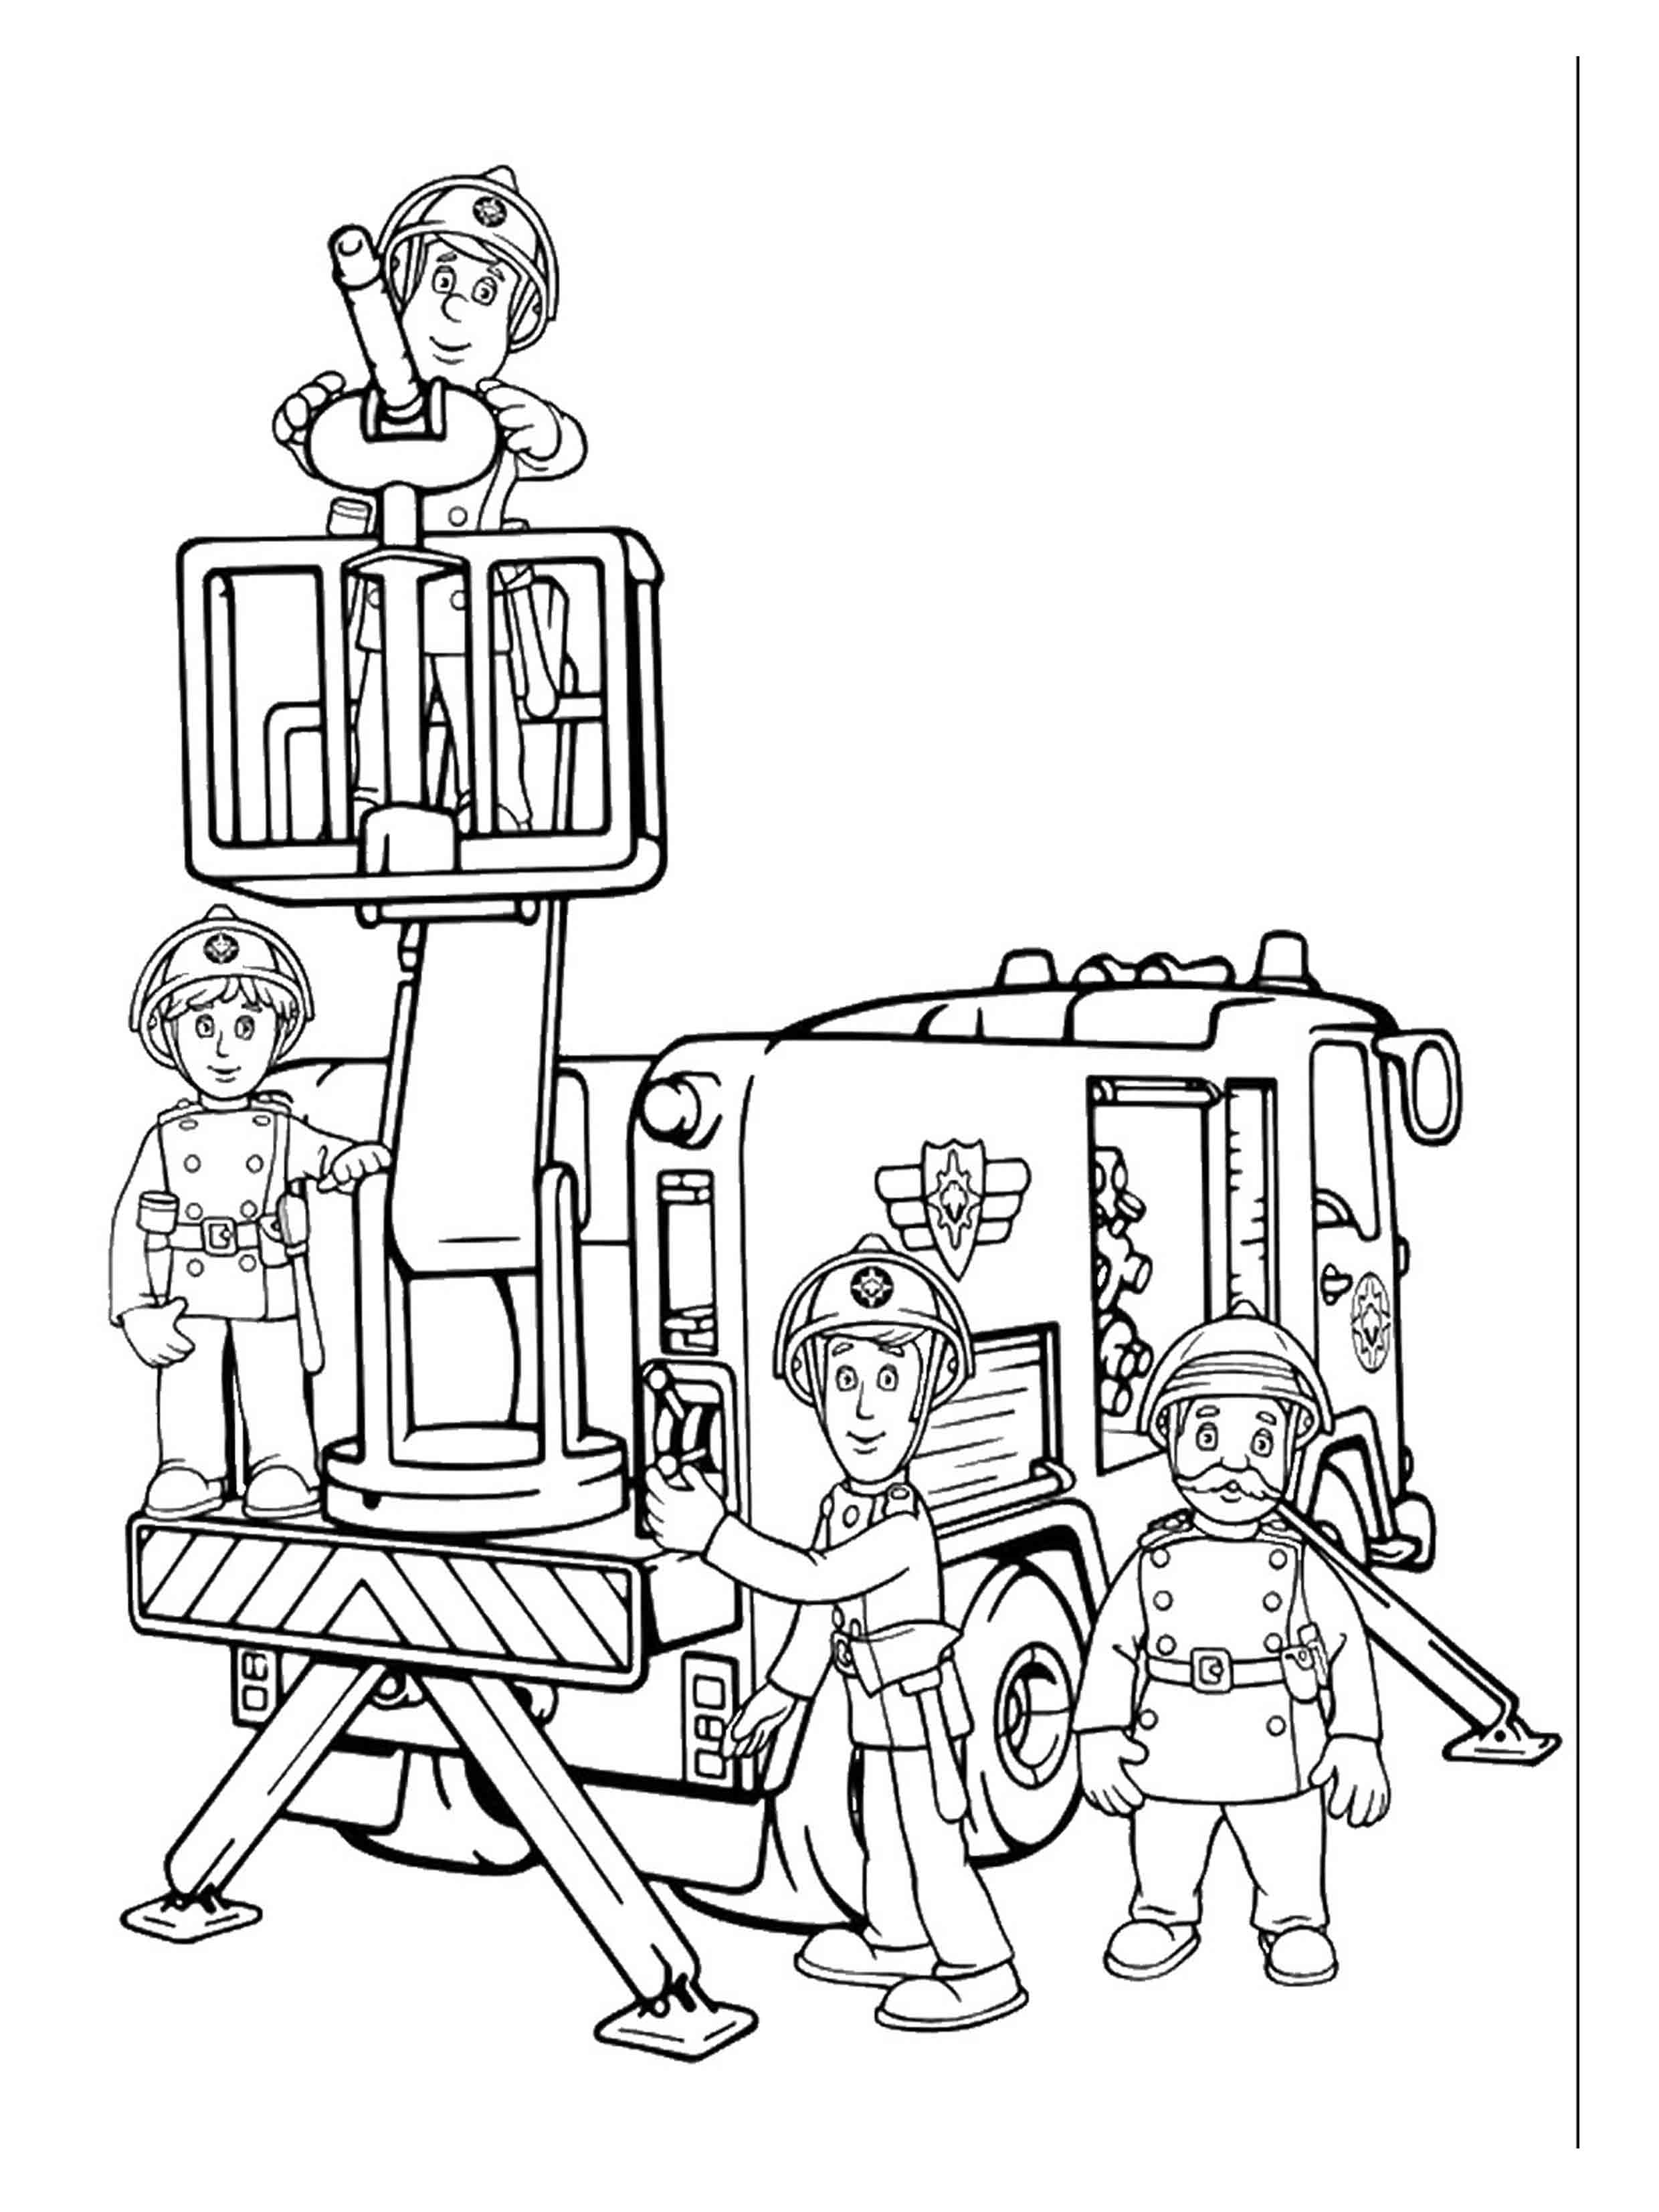 coloring book pages fireman - photo#21